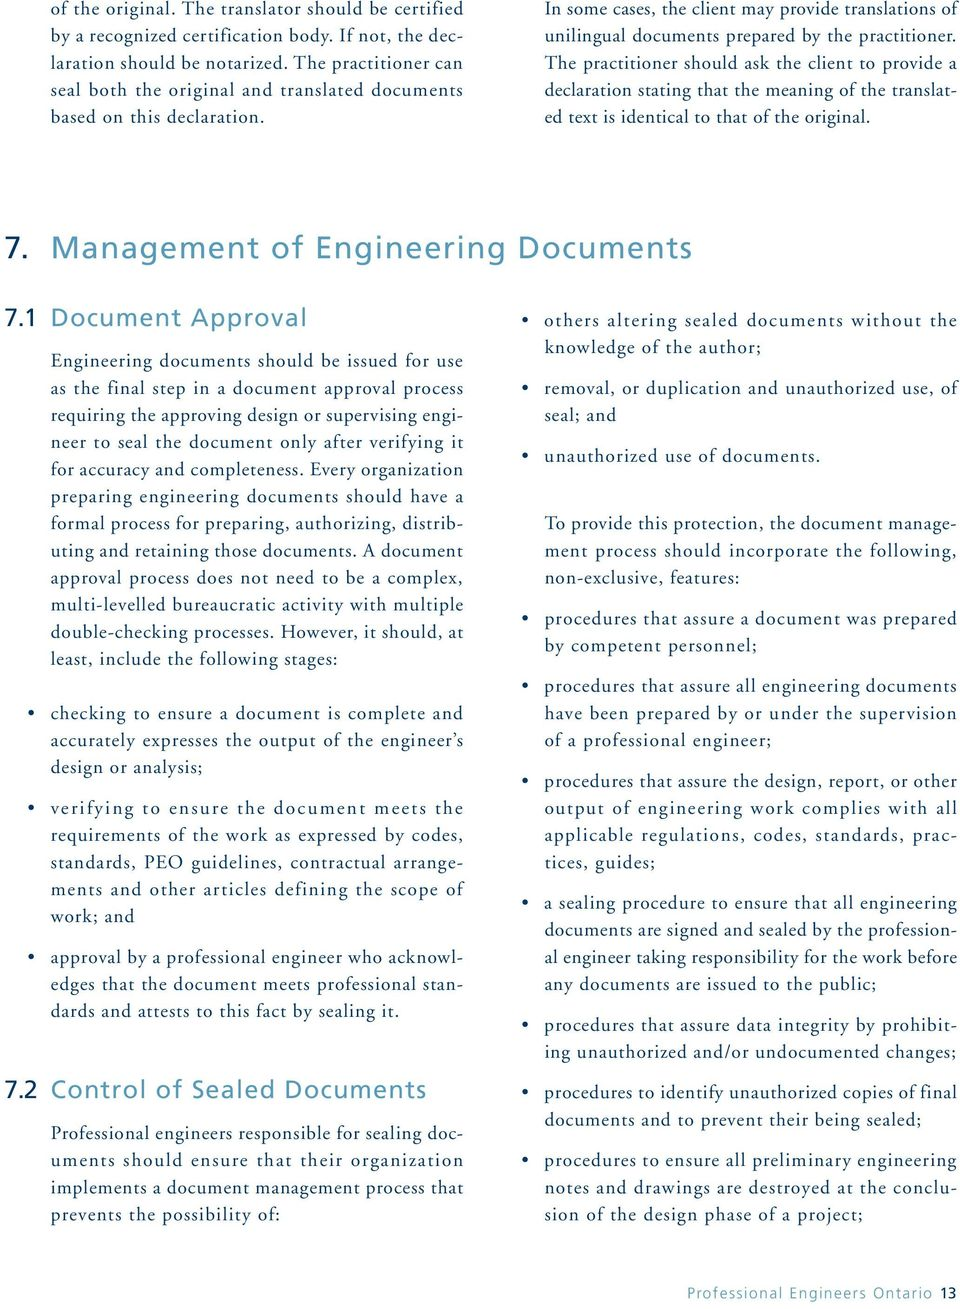 The practitioner should ask the client to provide a declaration stating that the meaning of the translated text is identical to that of the original. 7. Management of Engineering Documents 7.